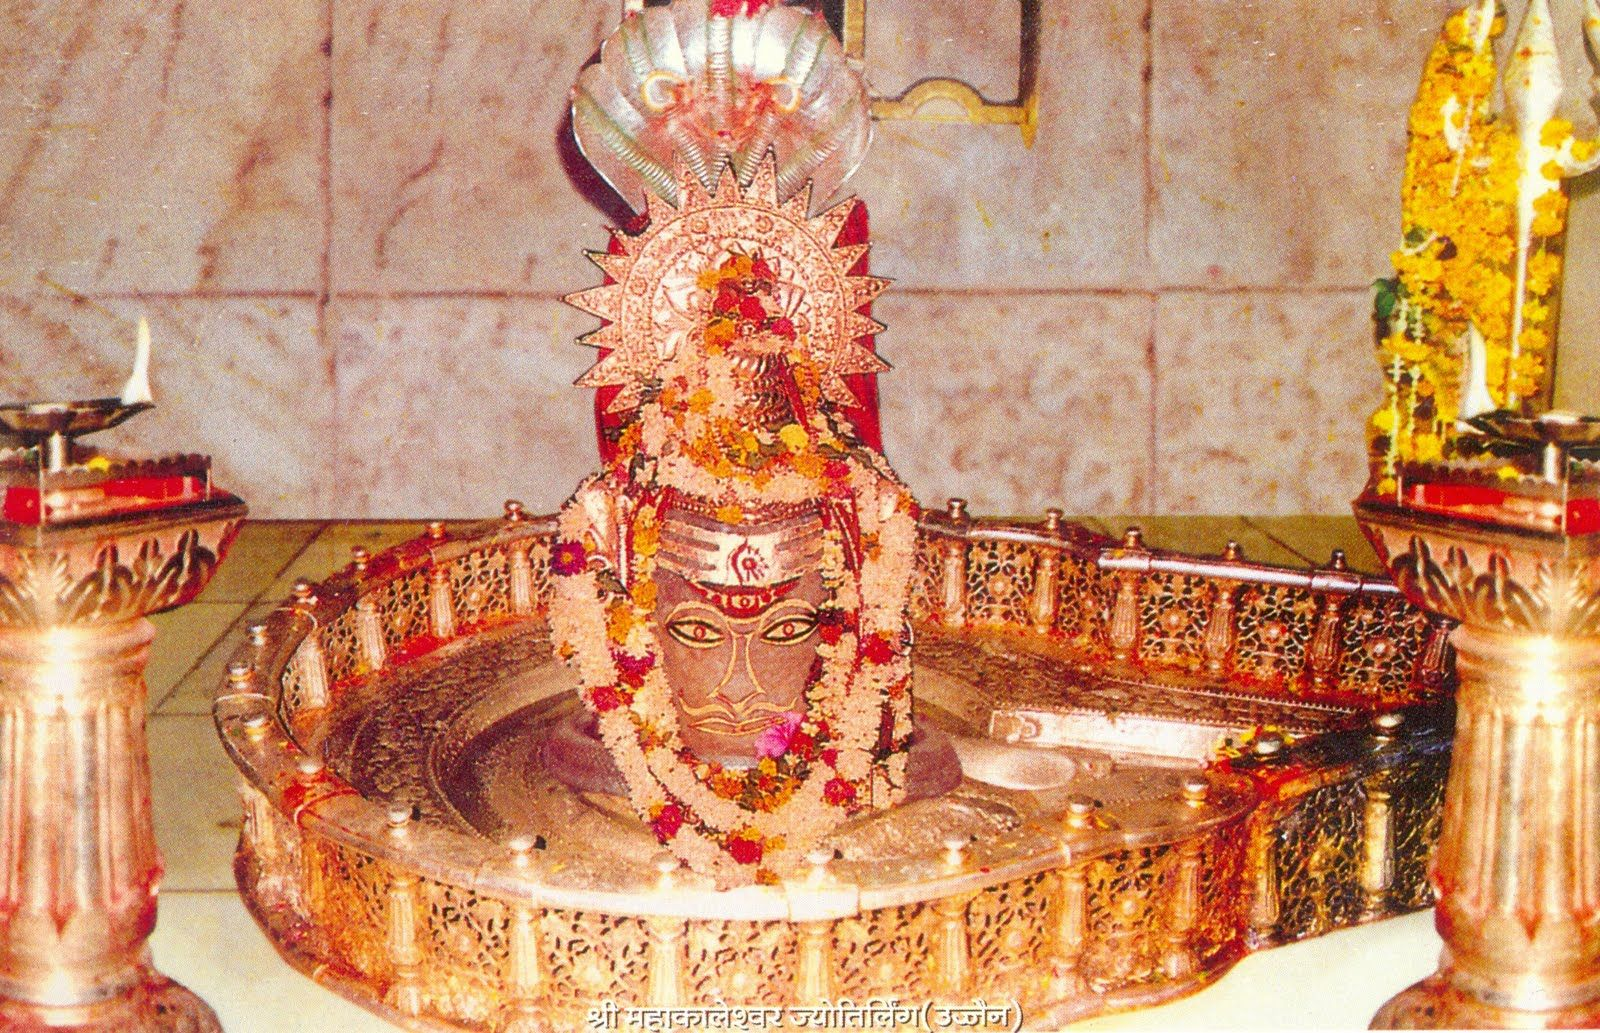 Mahakaleshwar Jyotirlinga : Victory of Devotion Over Demon